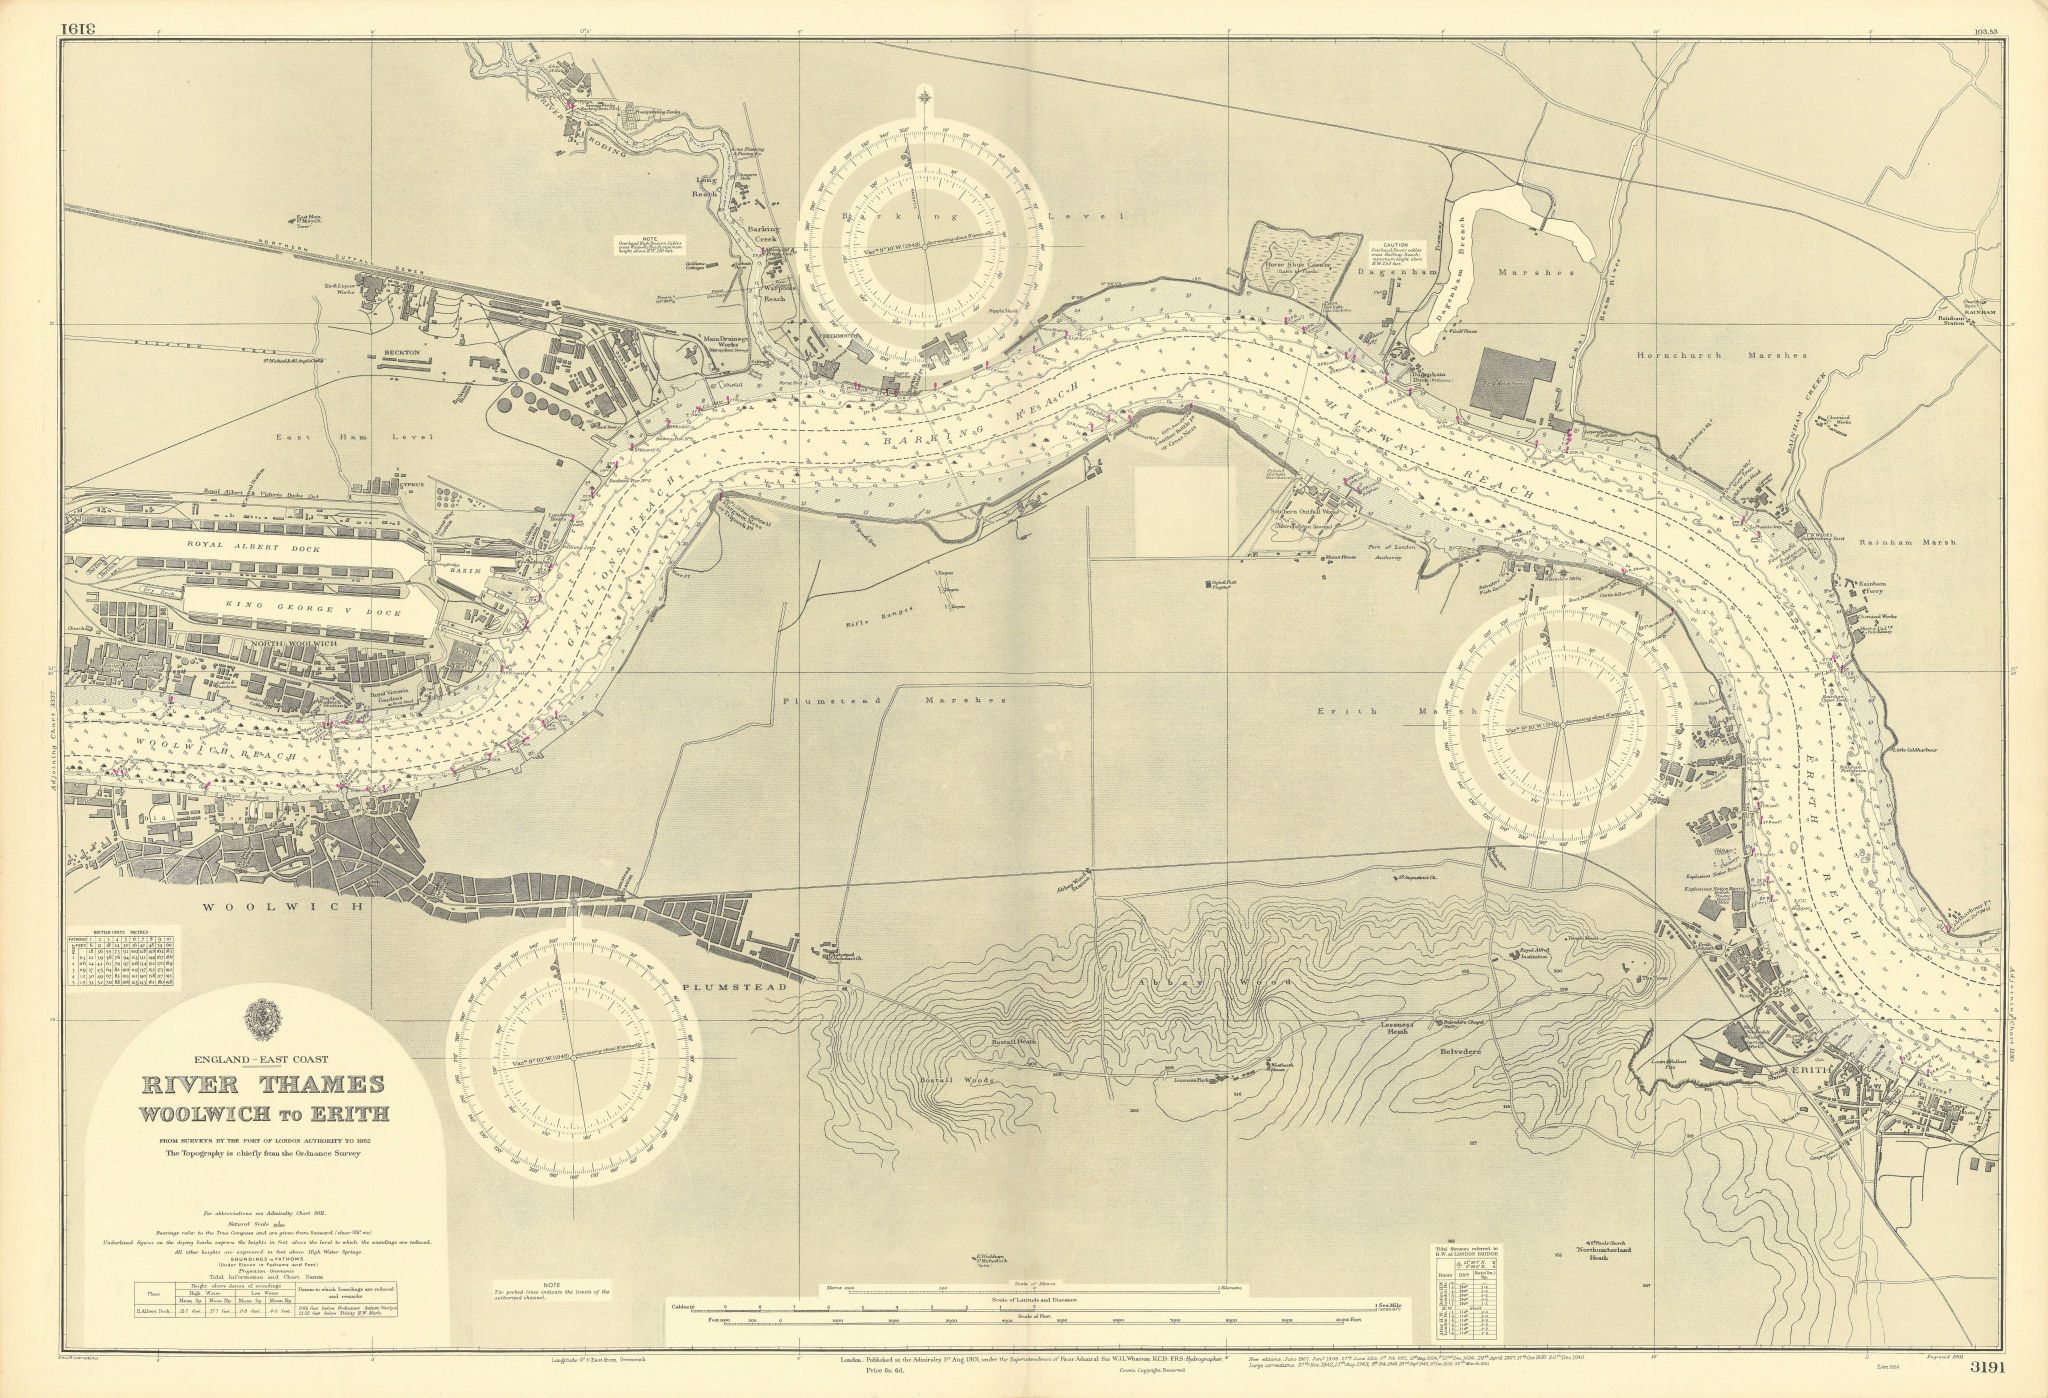 Thames Woolwich-Erith Royal Docks London ADMIRALTY sea chart 1901 (1953) map